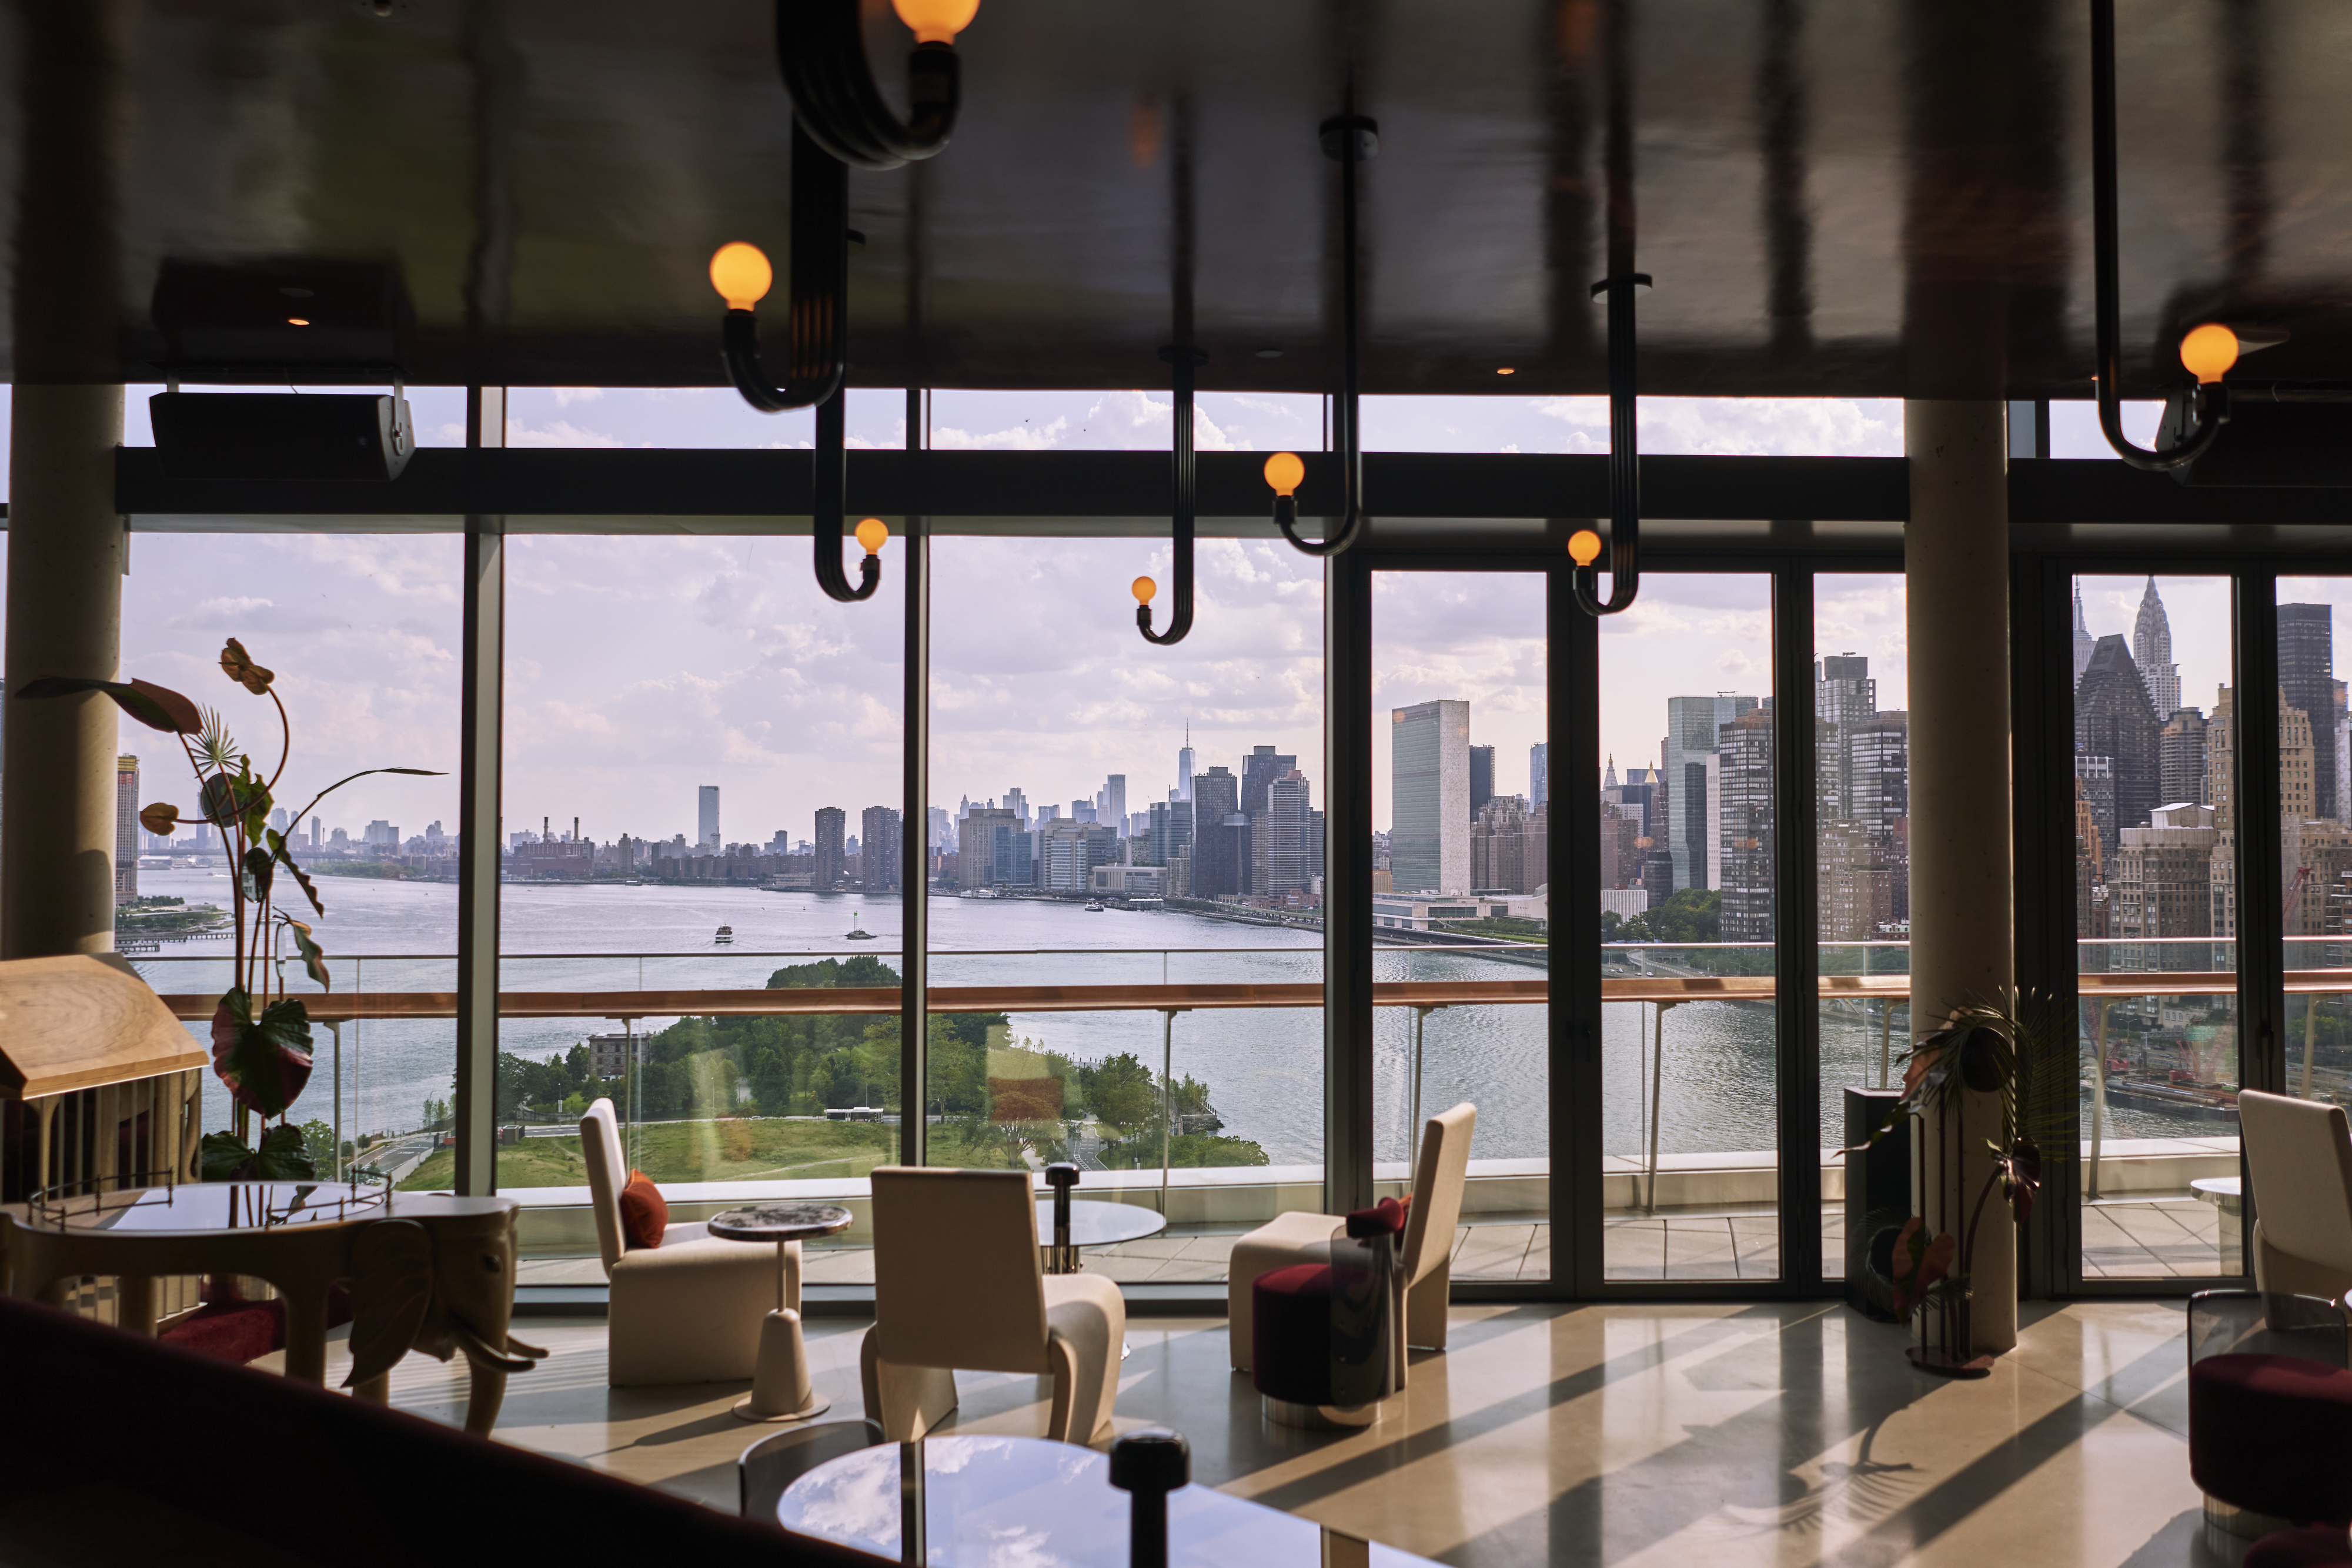 Panorama Room, a new cocktail bar on top of the island of Graduate Roosevelt.